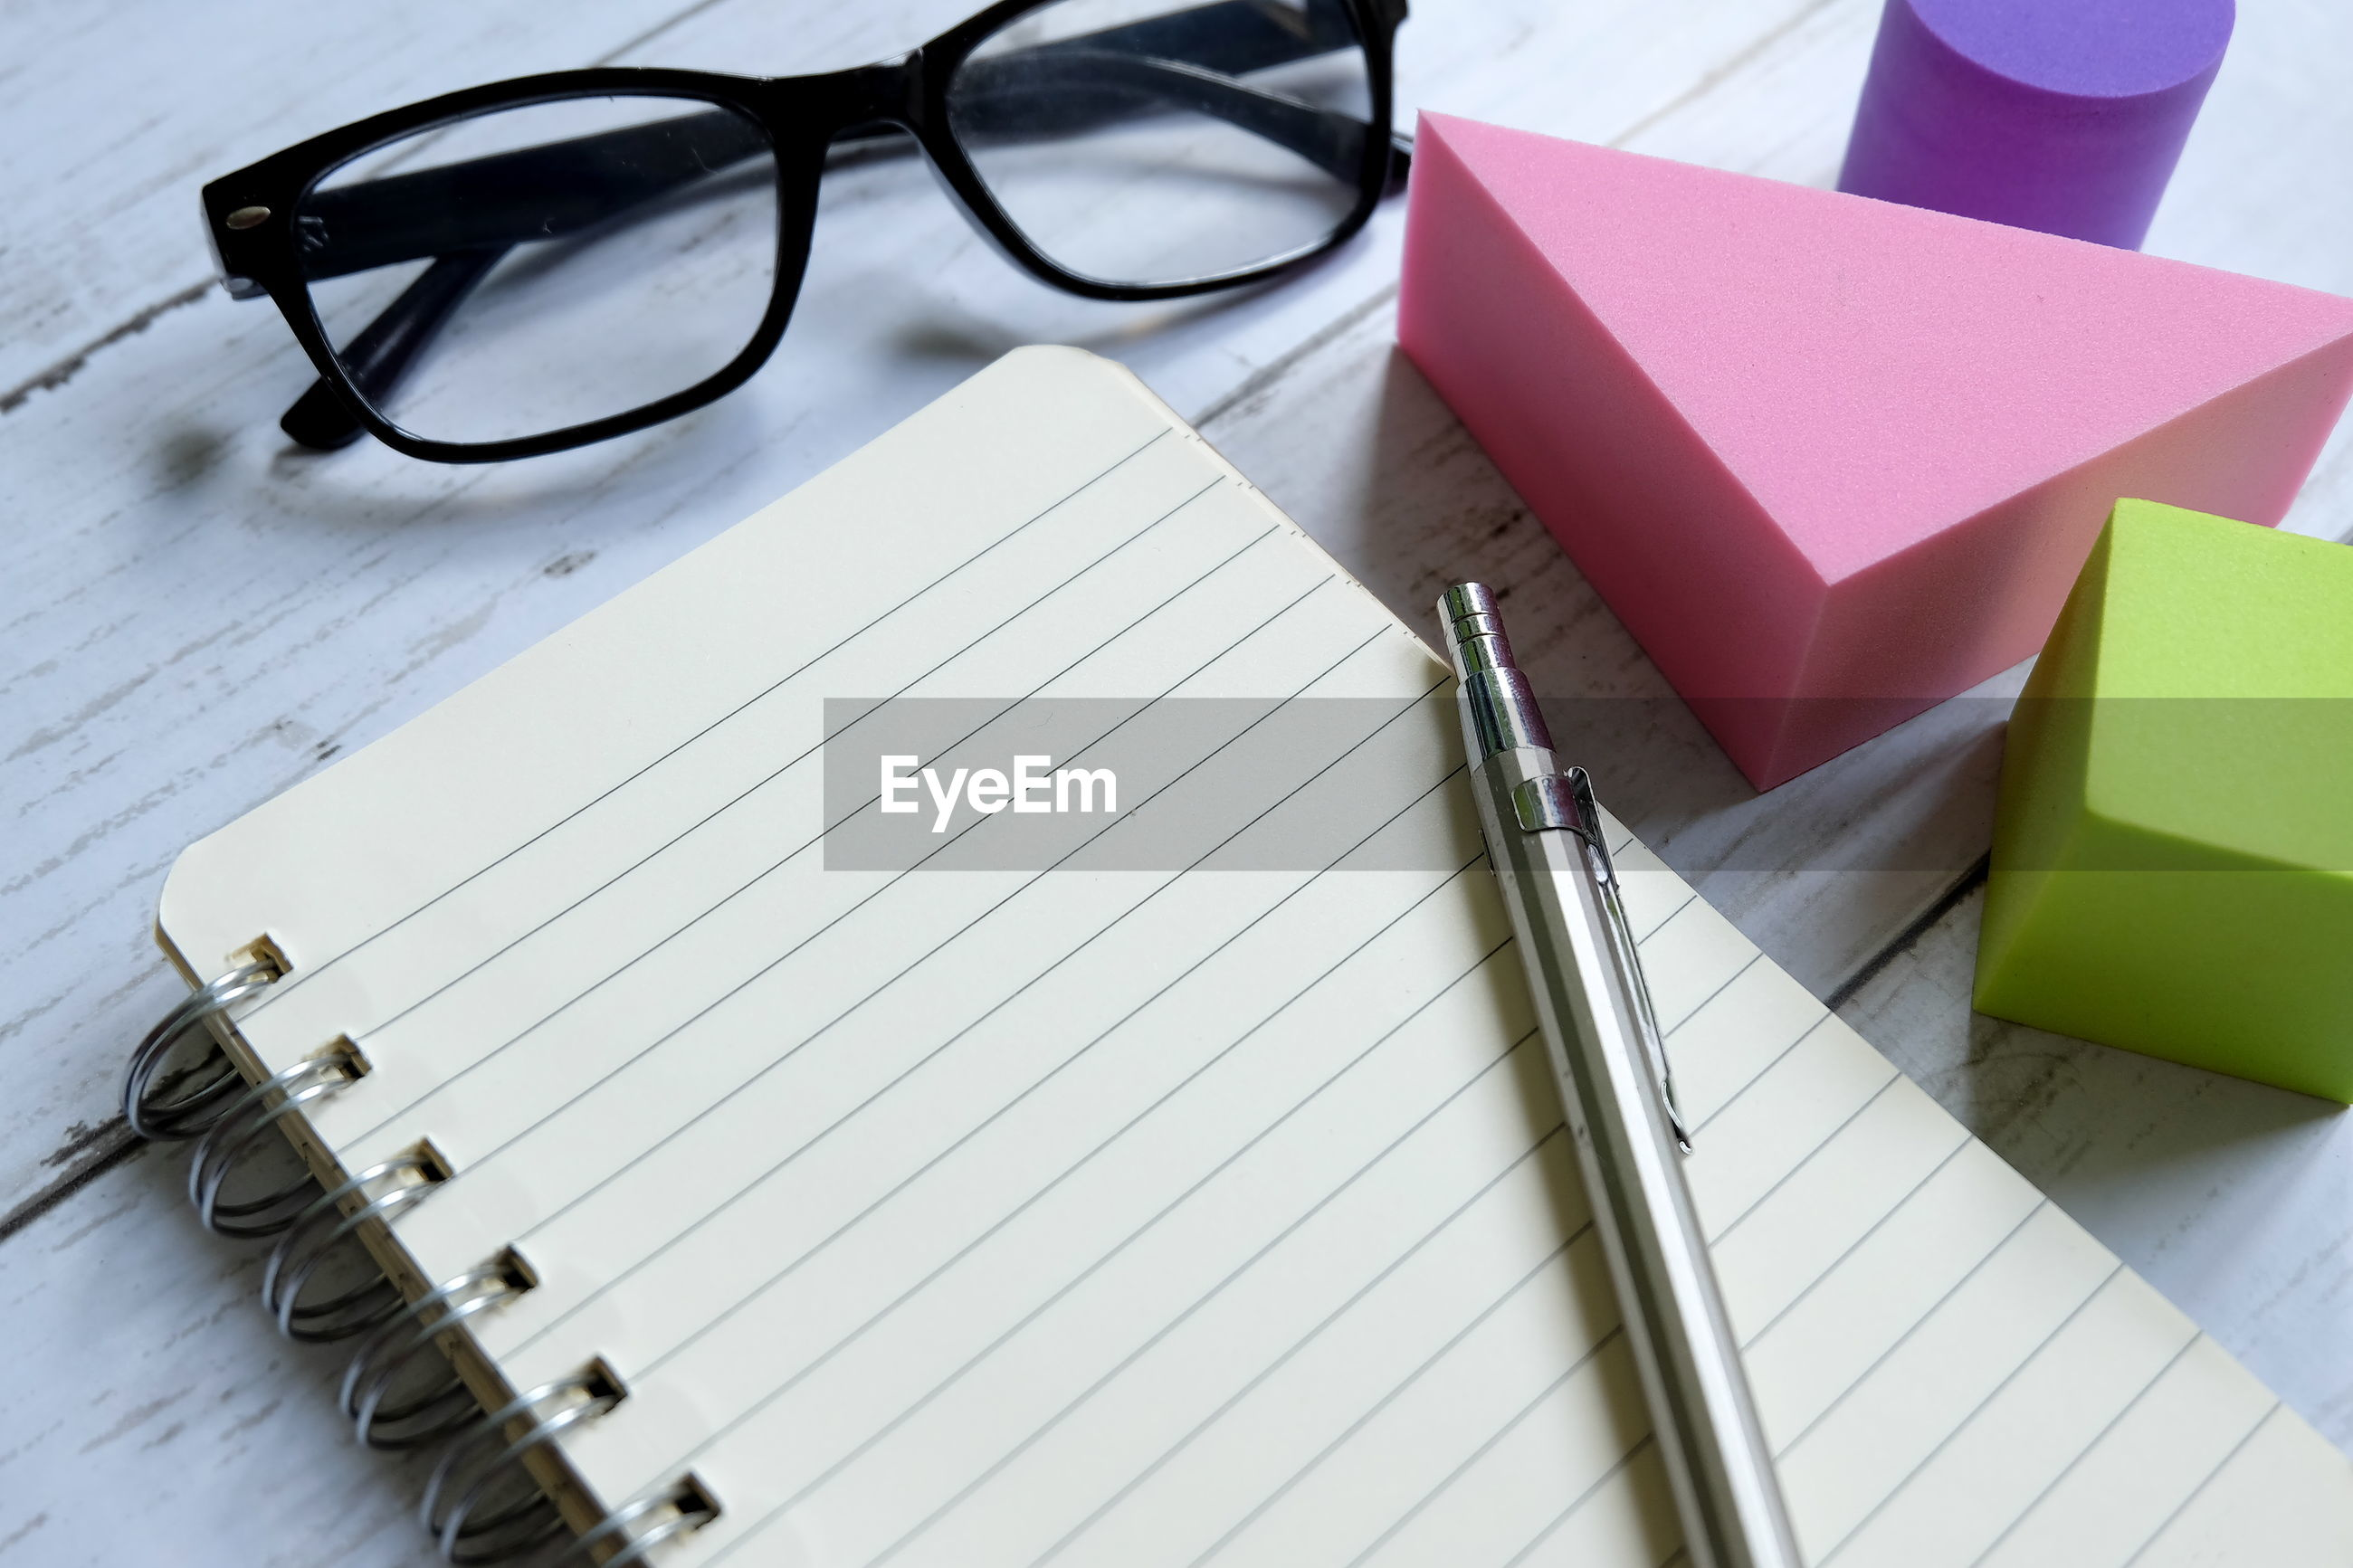 Close-up of book with pen and eyeglasses on table